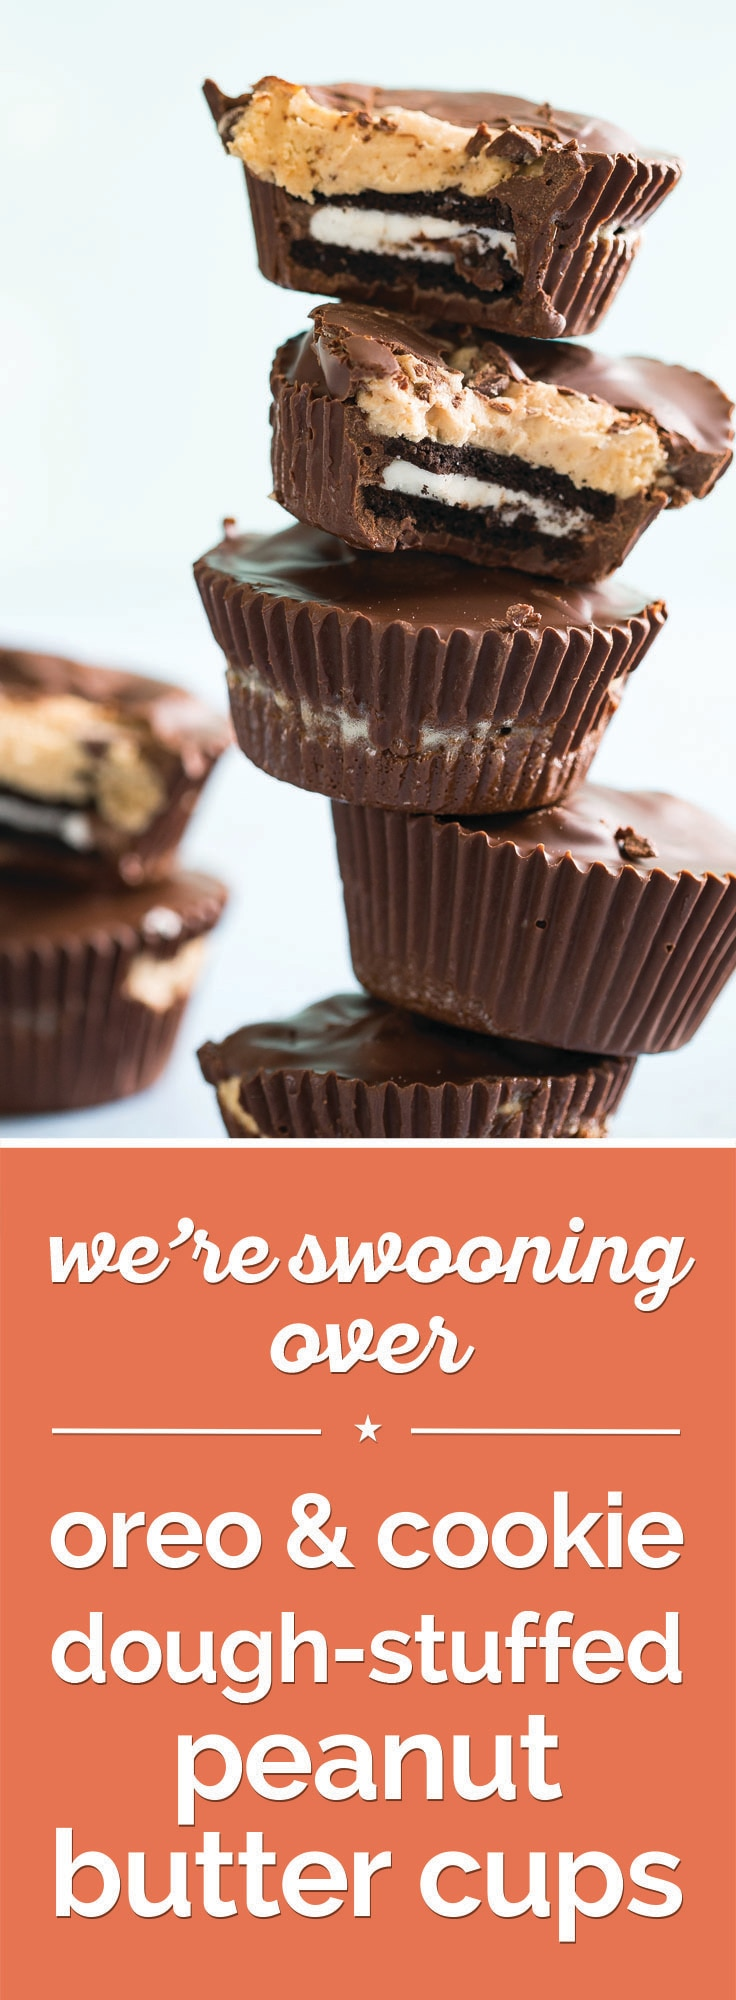 Homemade Peanut Butter Cups Recipe | thegoodstuff